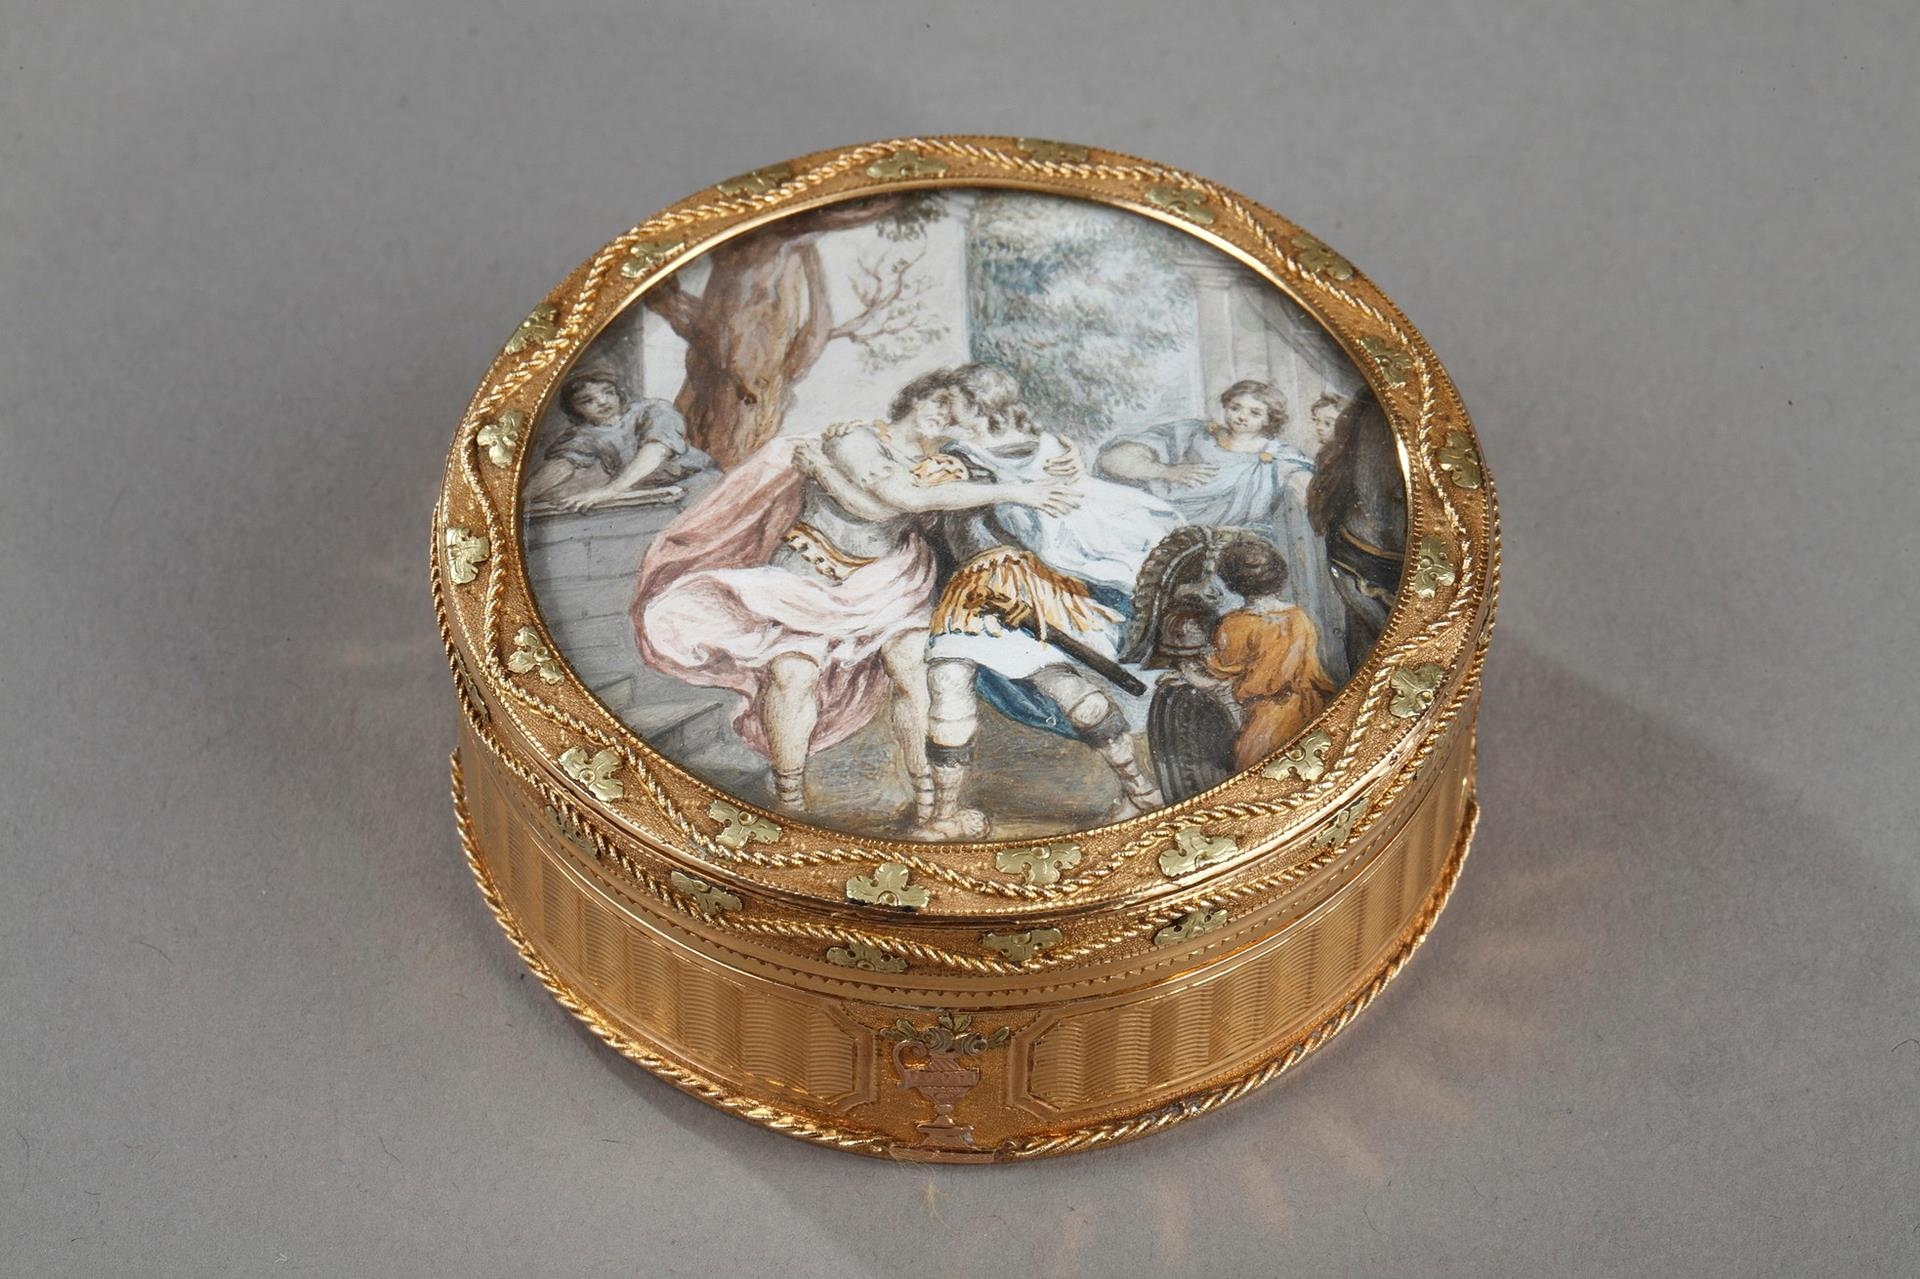 18th century gold box with miniature on ivory.